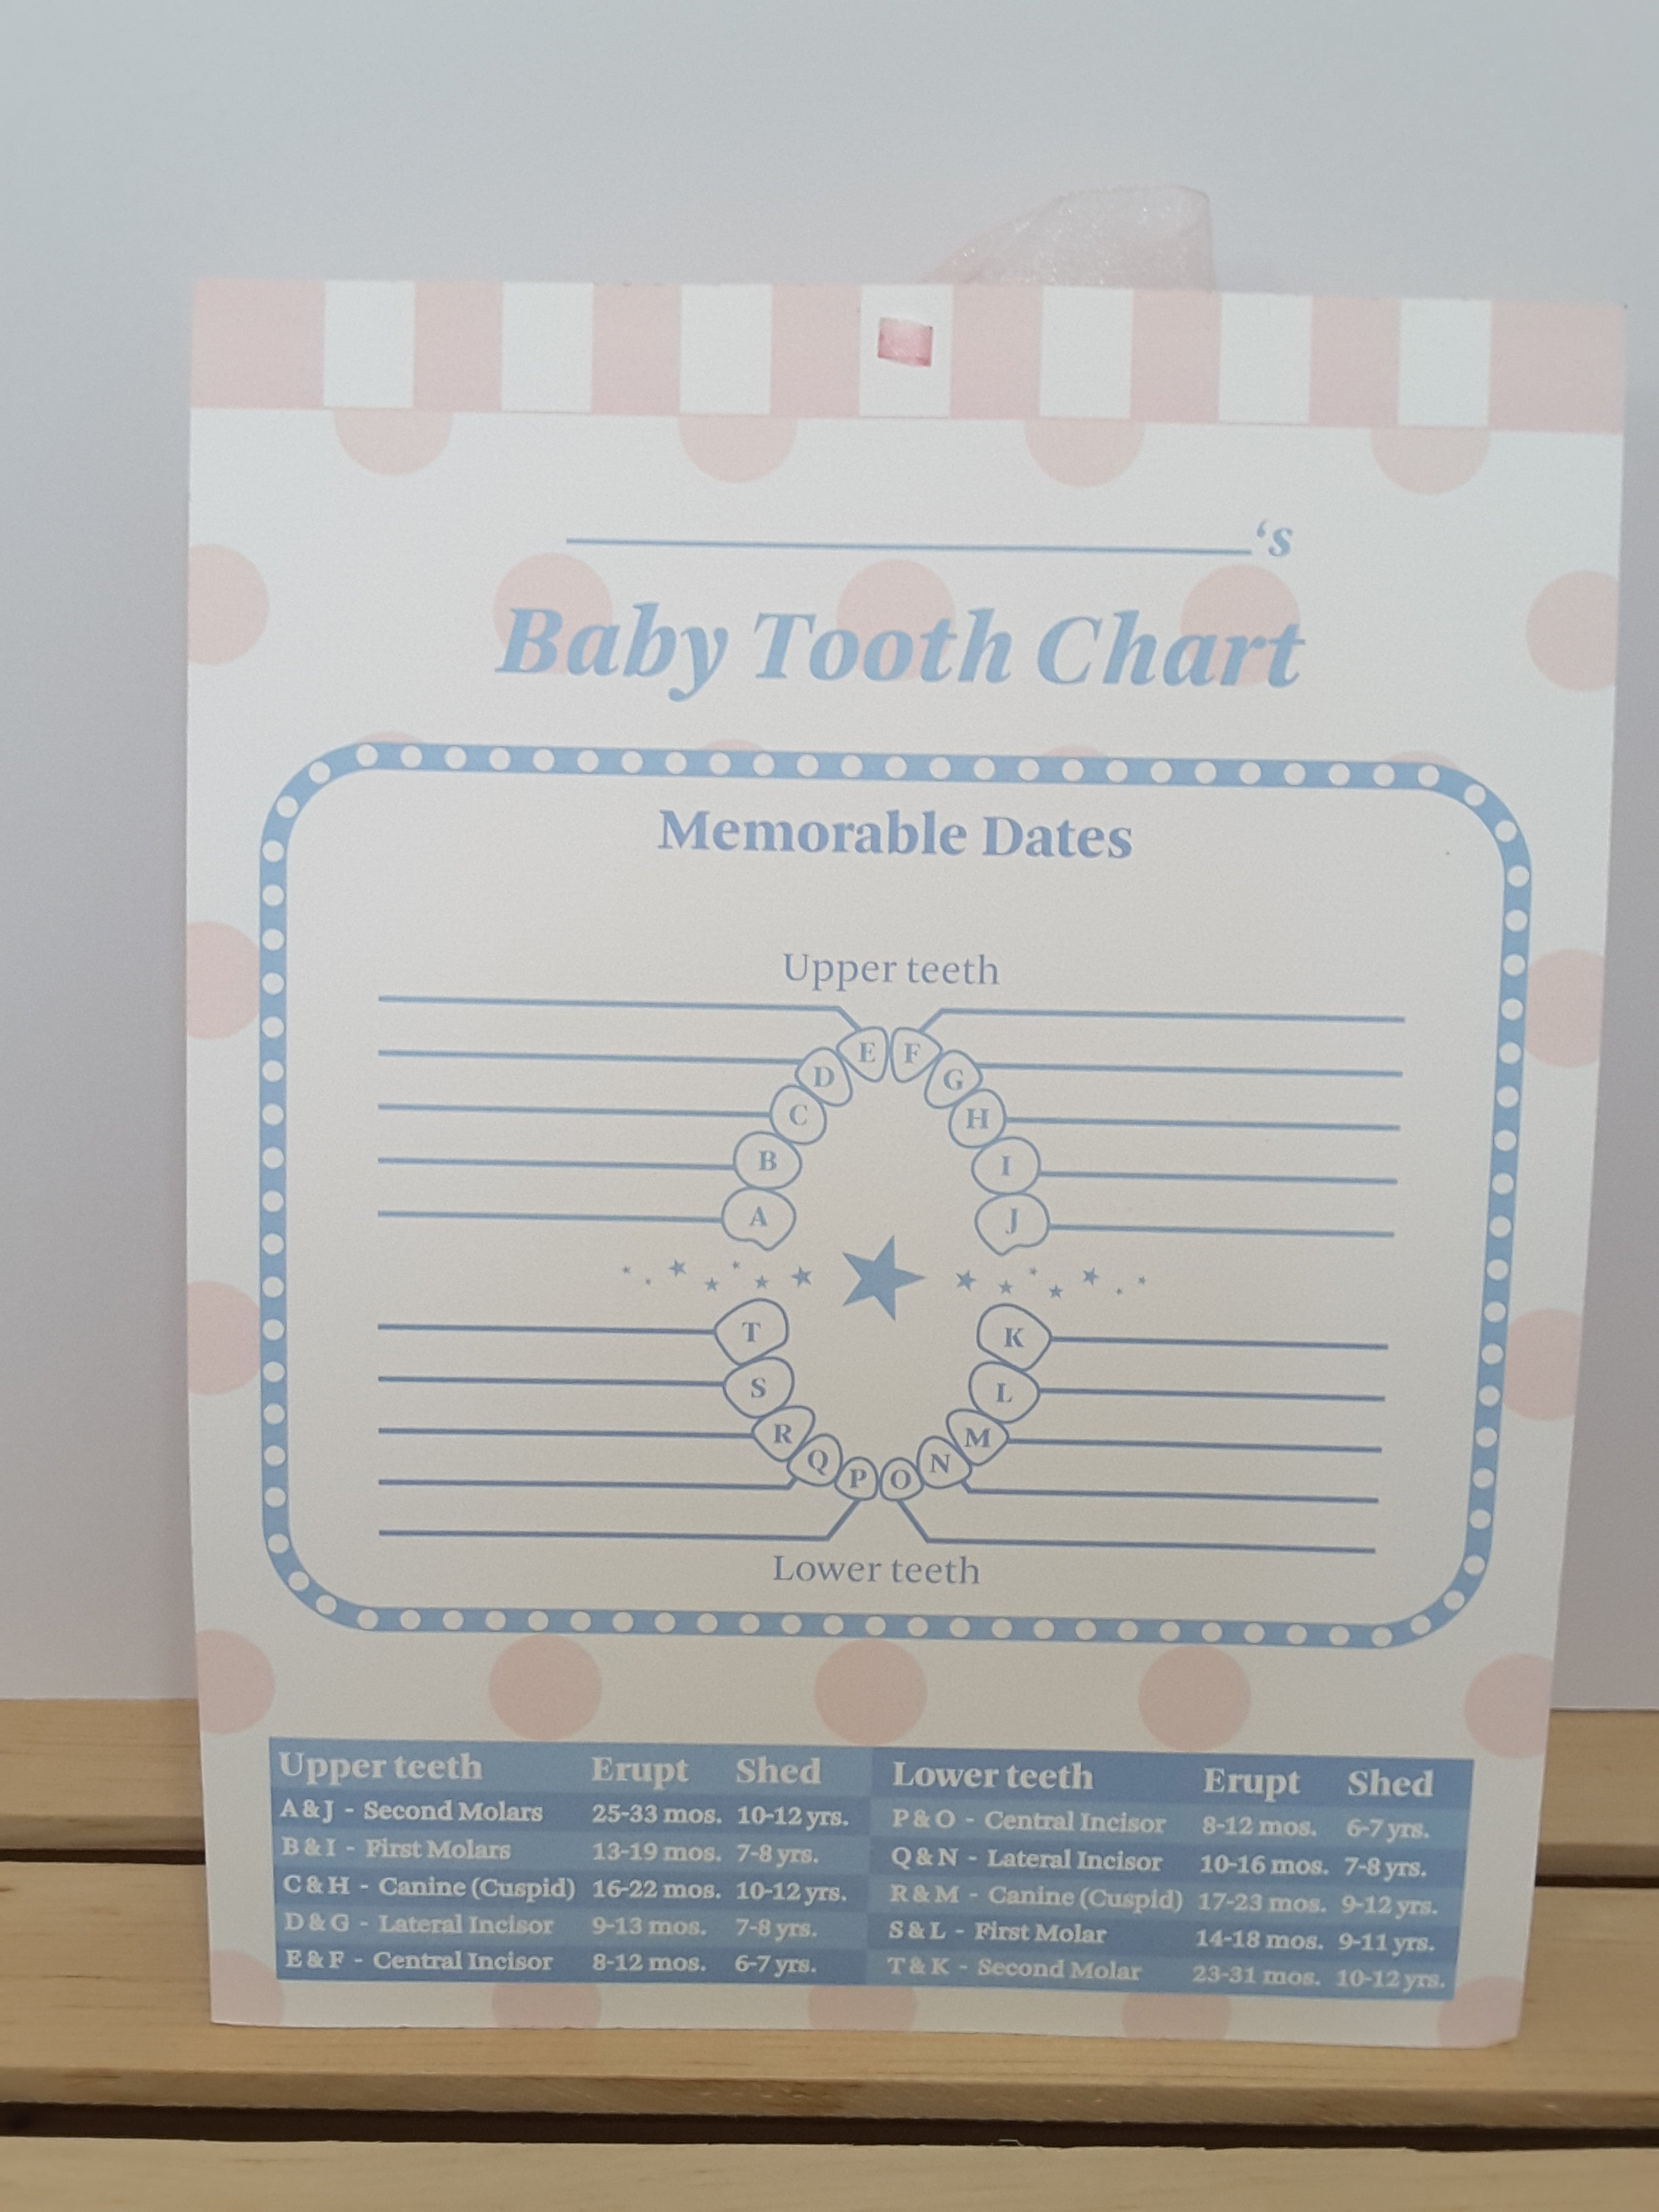 Baby Tooth Chart - TheLastWordBish.com